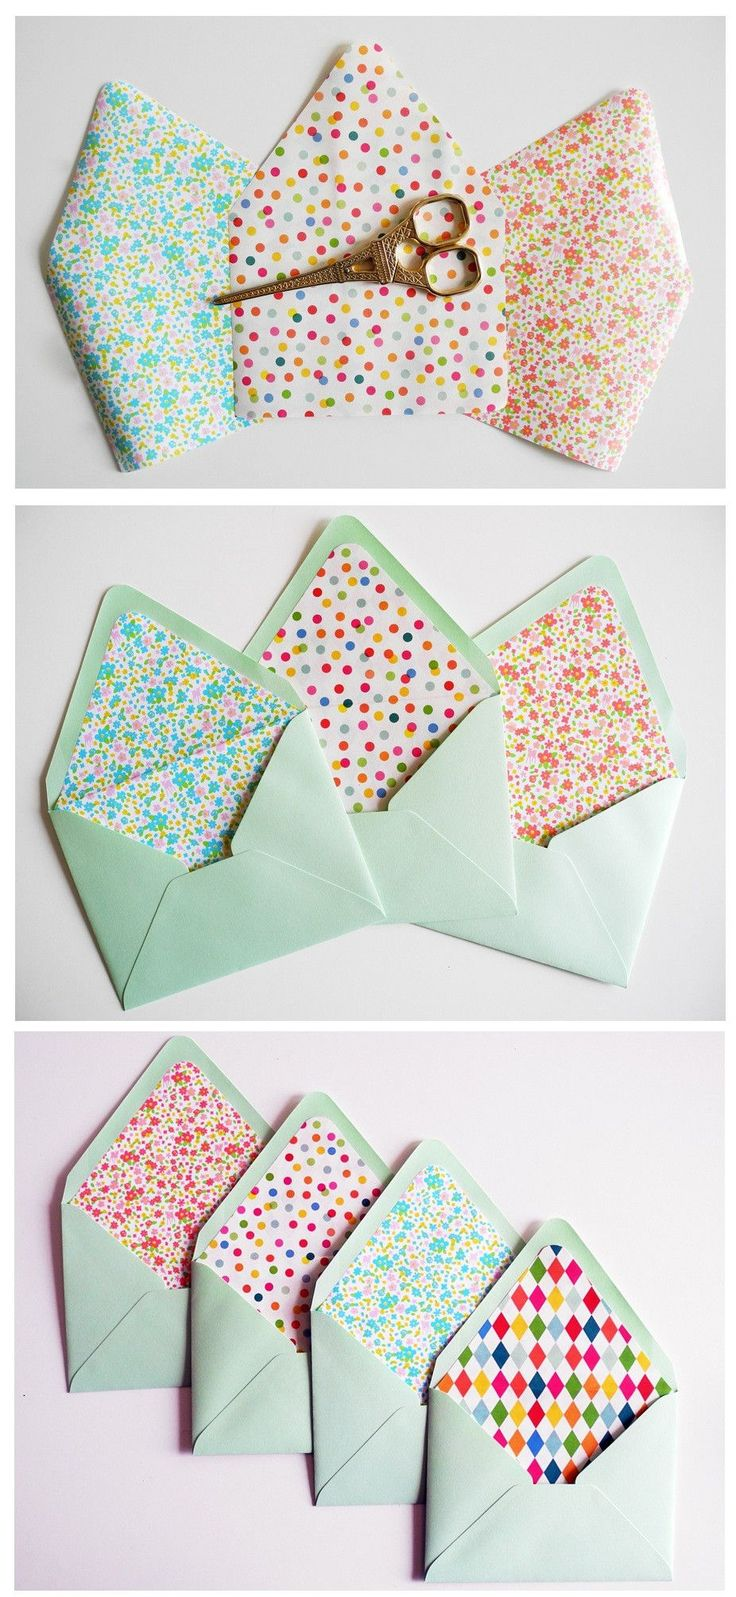 Scrapbook paper envelope template - 17 Best Ideas About Envelope Templates On Pinterest Cash Envelope System Budgeting System And Budget Plan